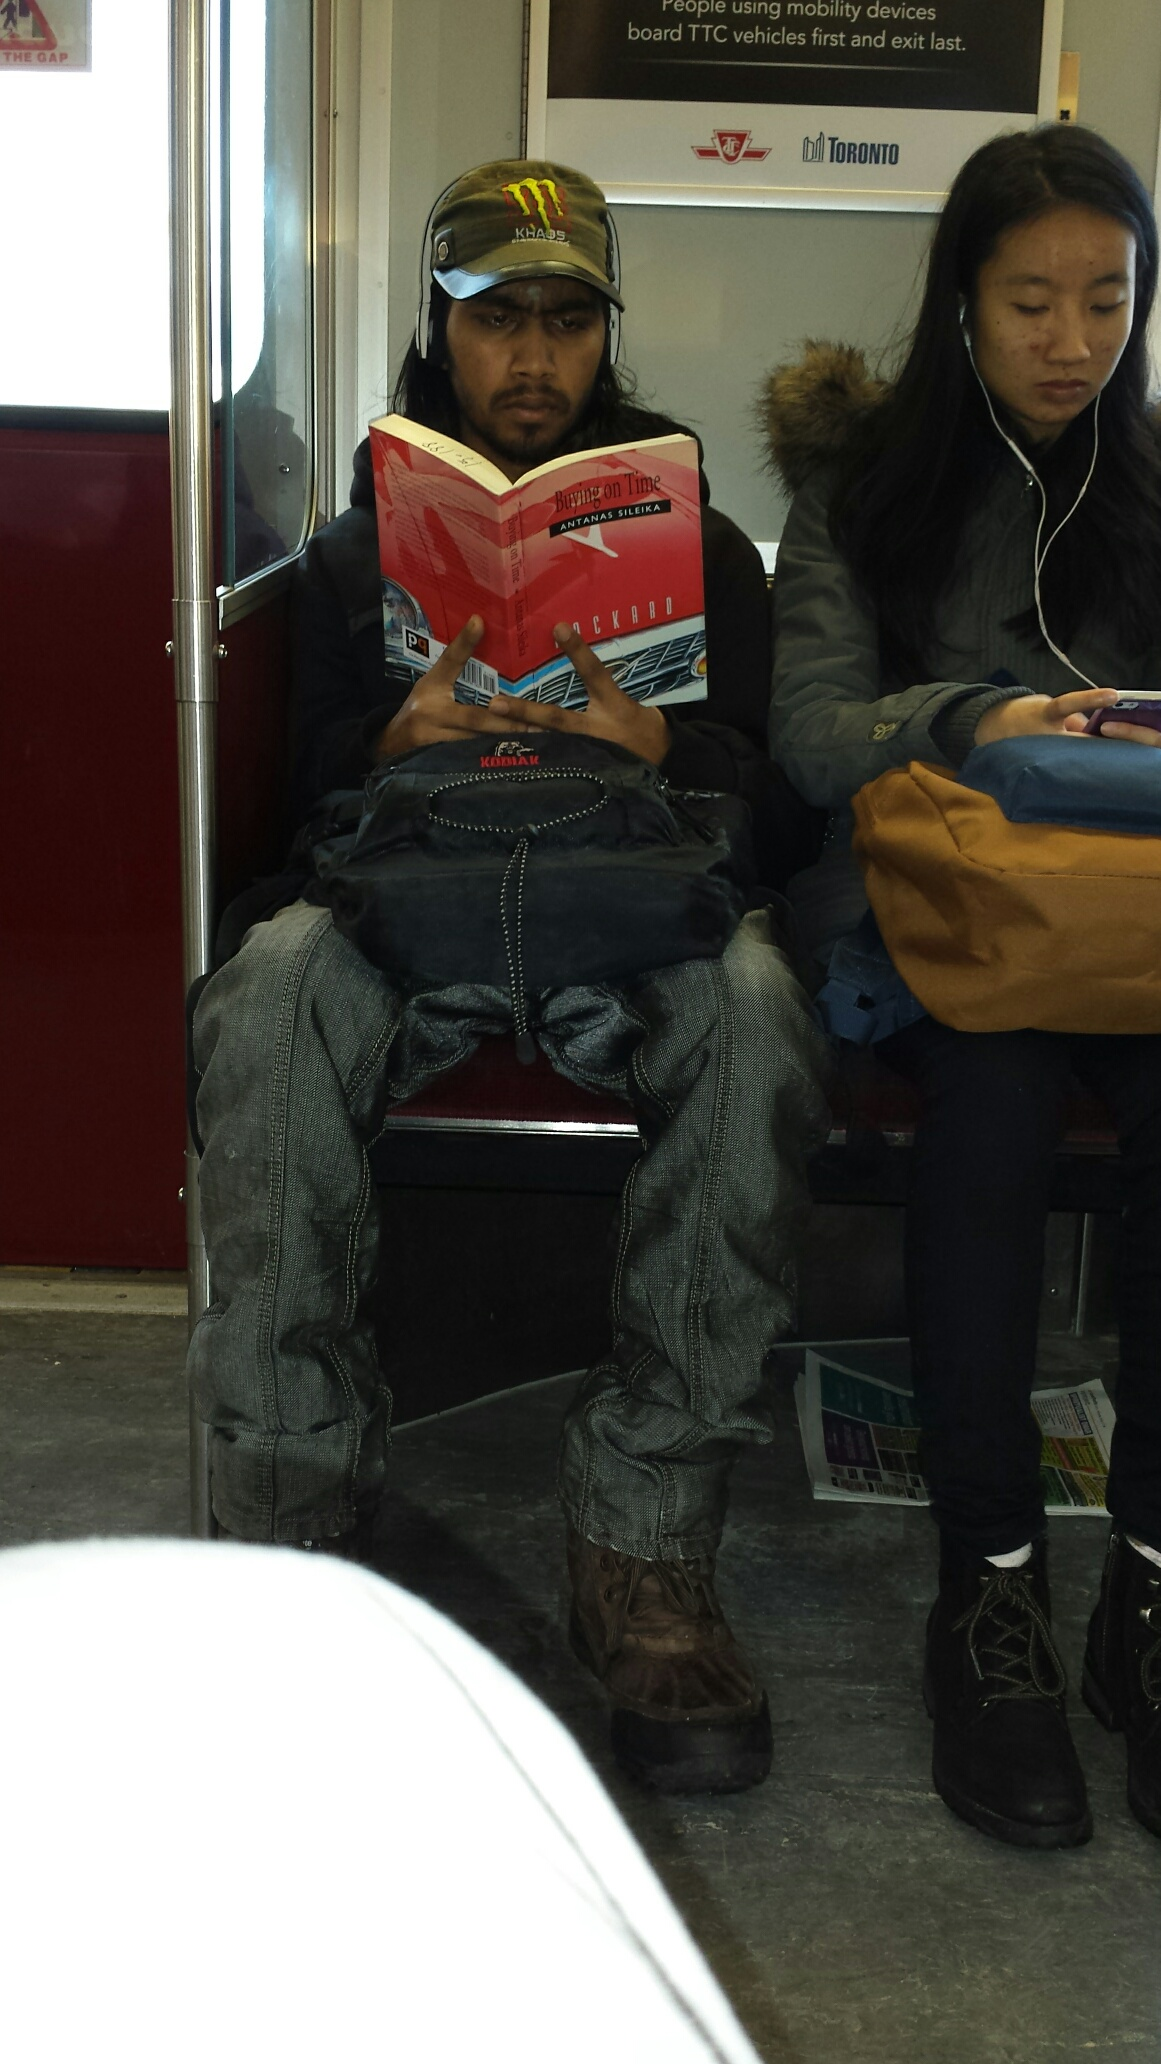 BOT on Subway